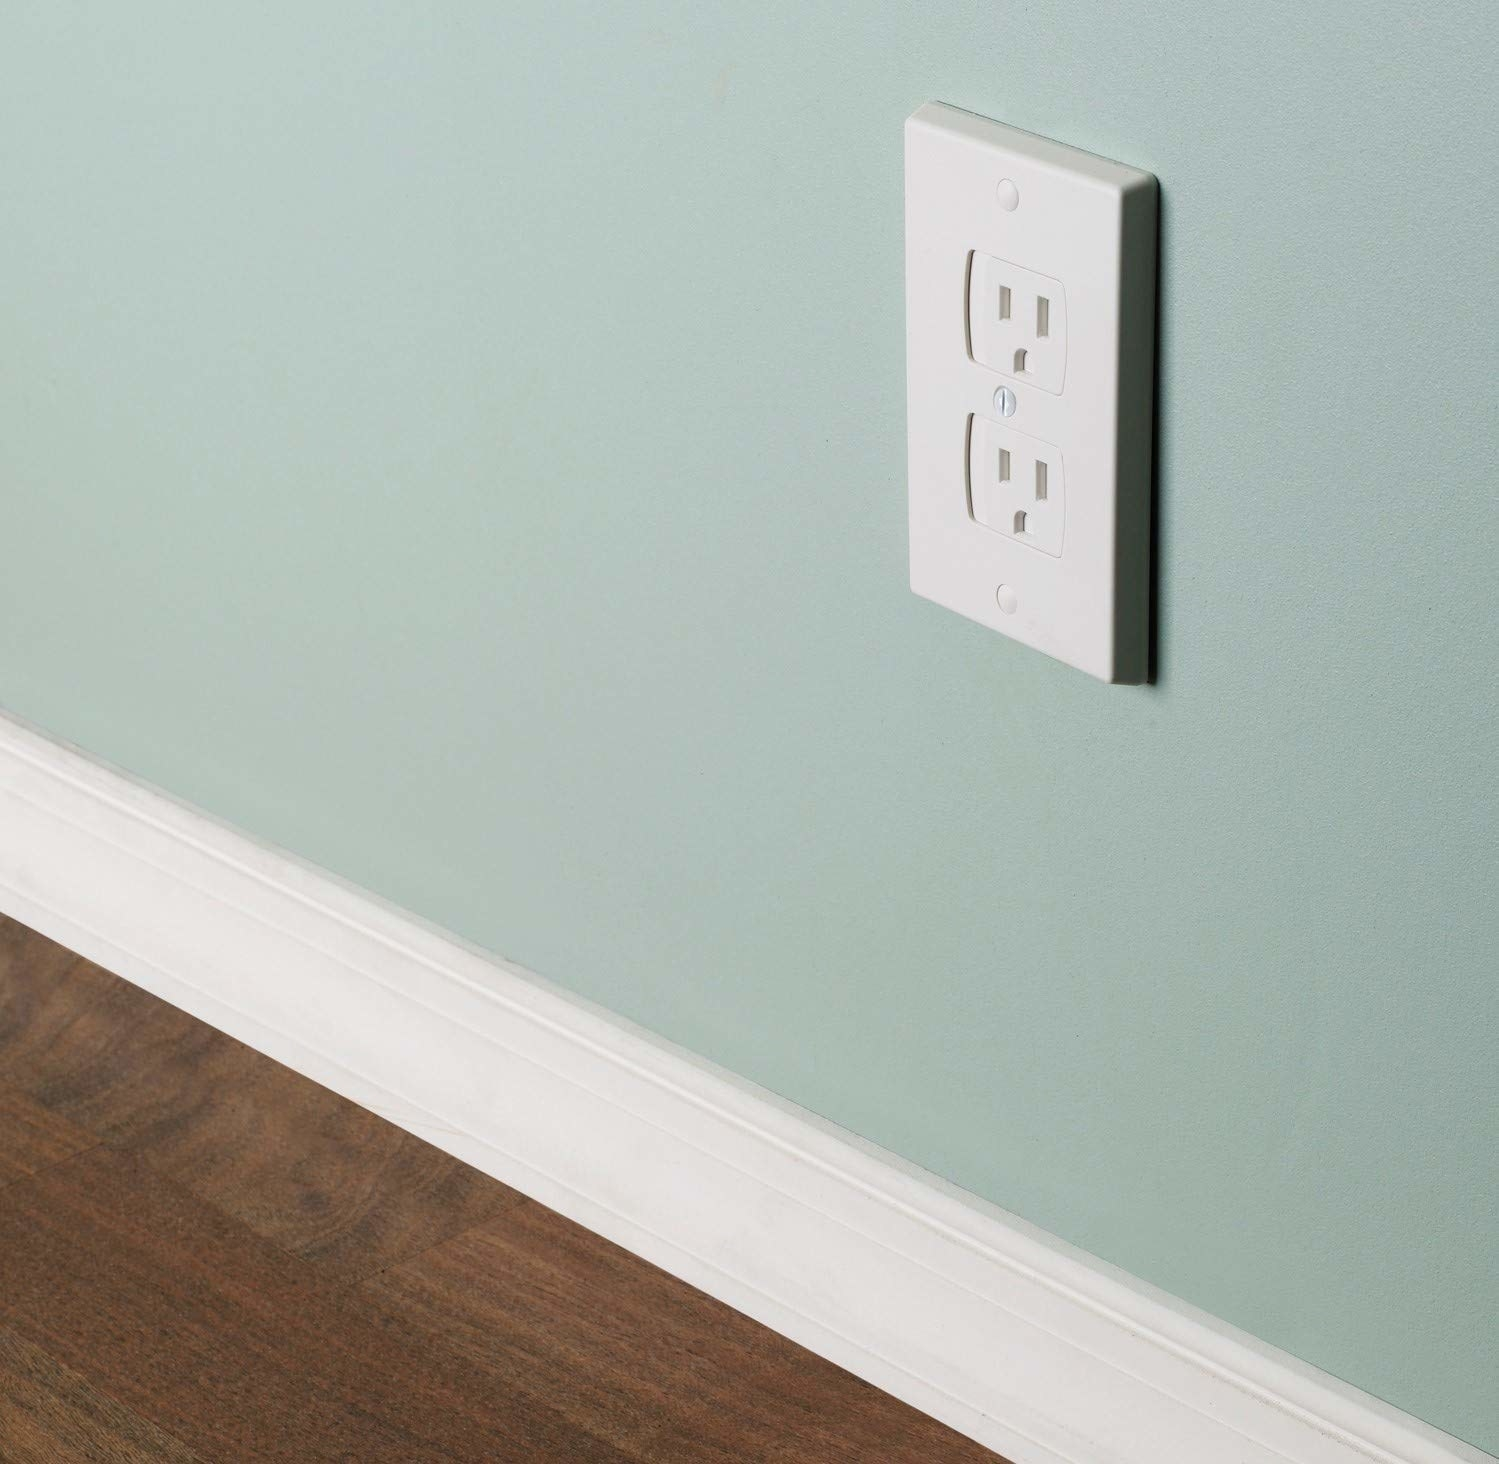 White wall outlet with slide covers